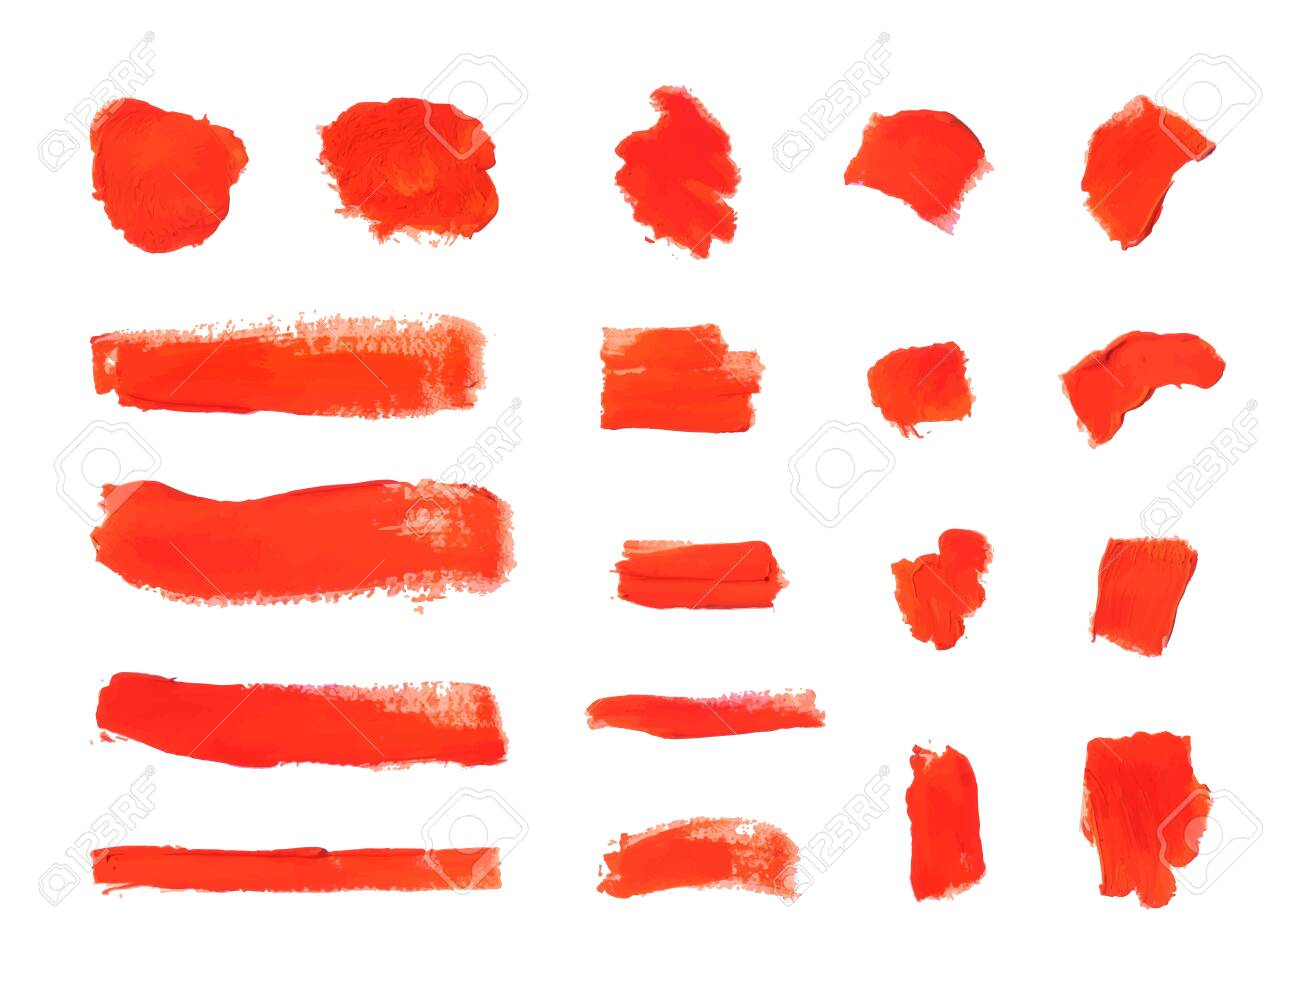 Vector Brush Strokes, Textured Red Paint Smears Isolated on White Background, Design Elements Collection. - 123194022